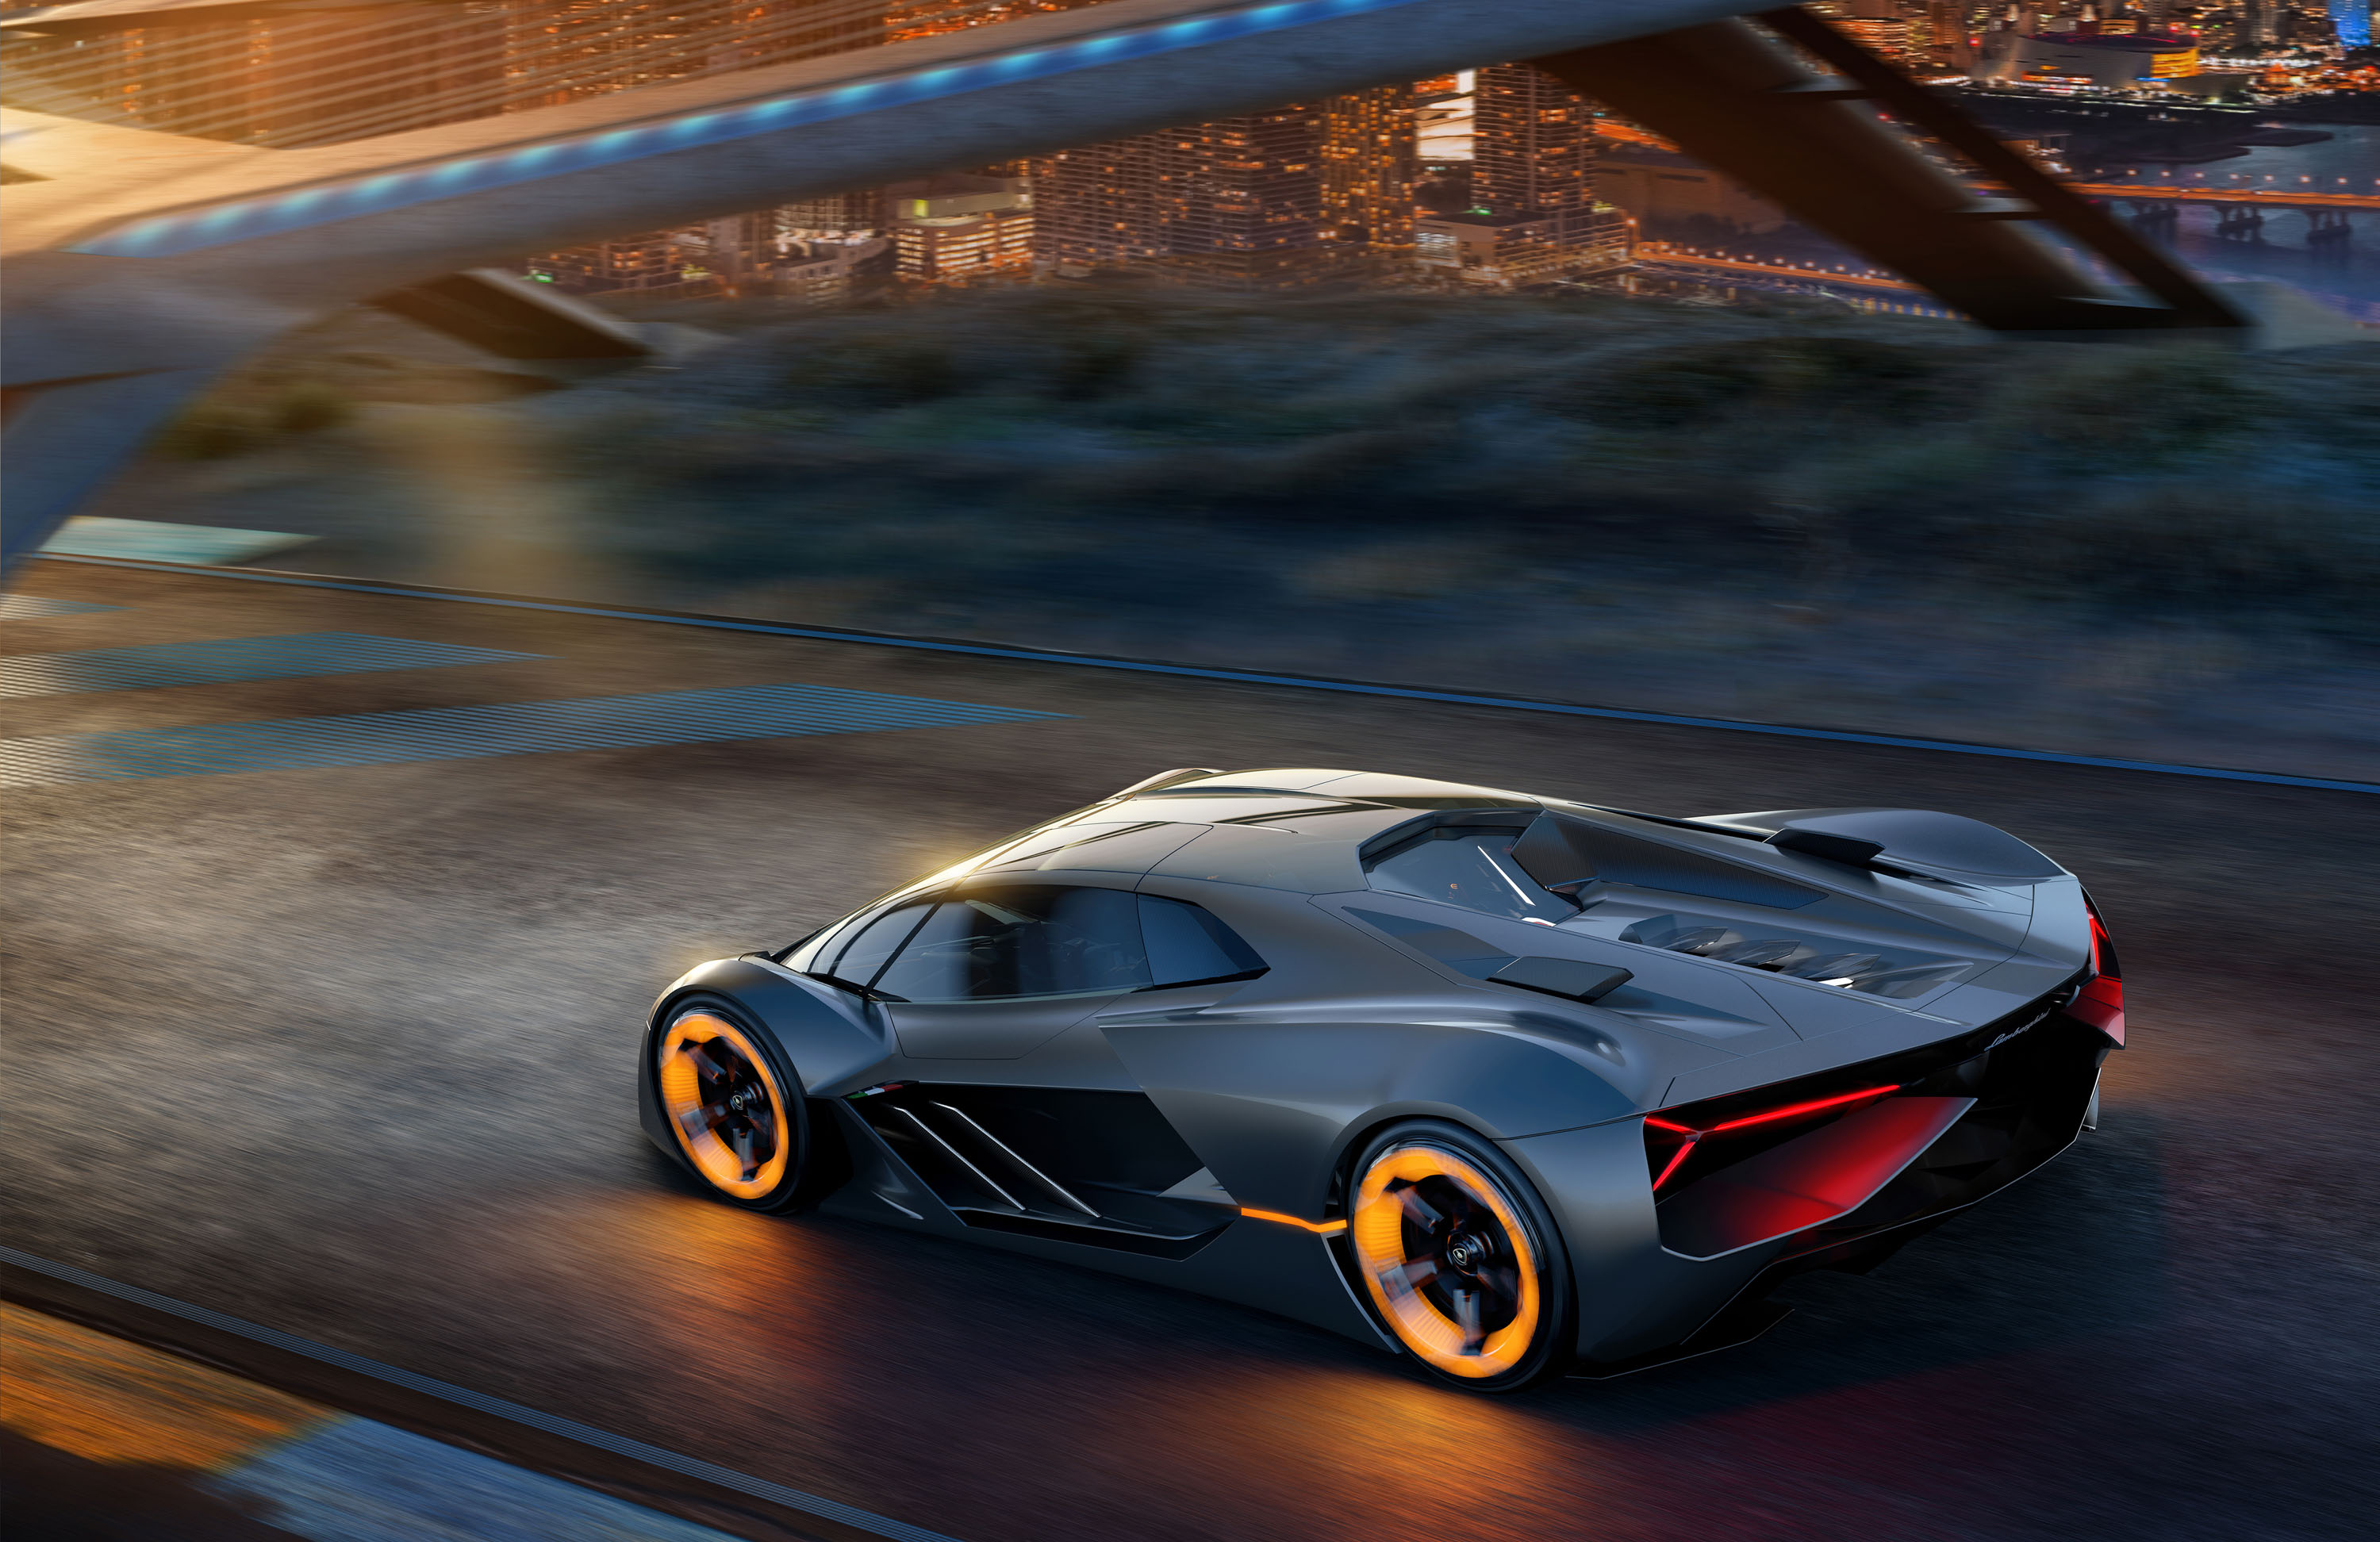 2019 Lamborghini Lb48h Hybrid Supercar Top Speed